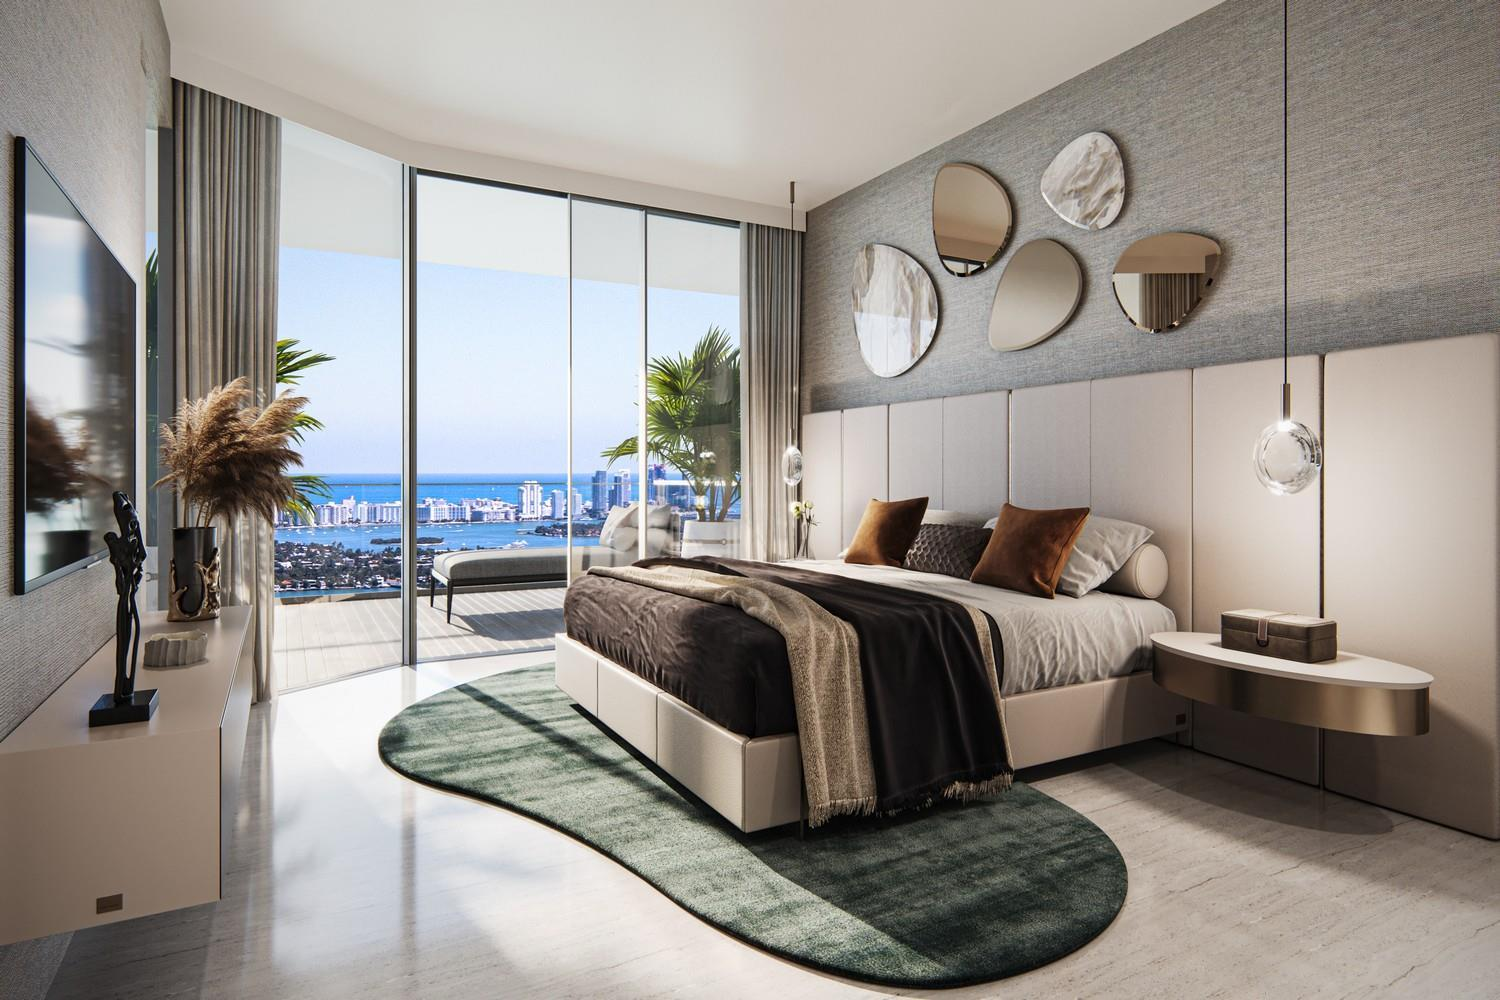 Bedroom featured in the Unit 07 By Aria Reserve Miami in Miami-Dade County, FL